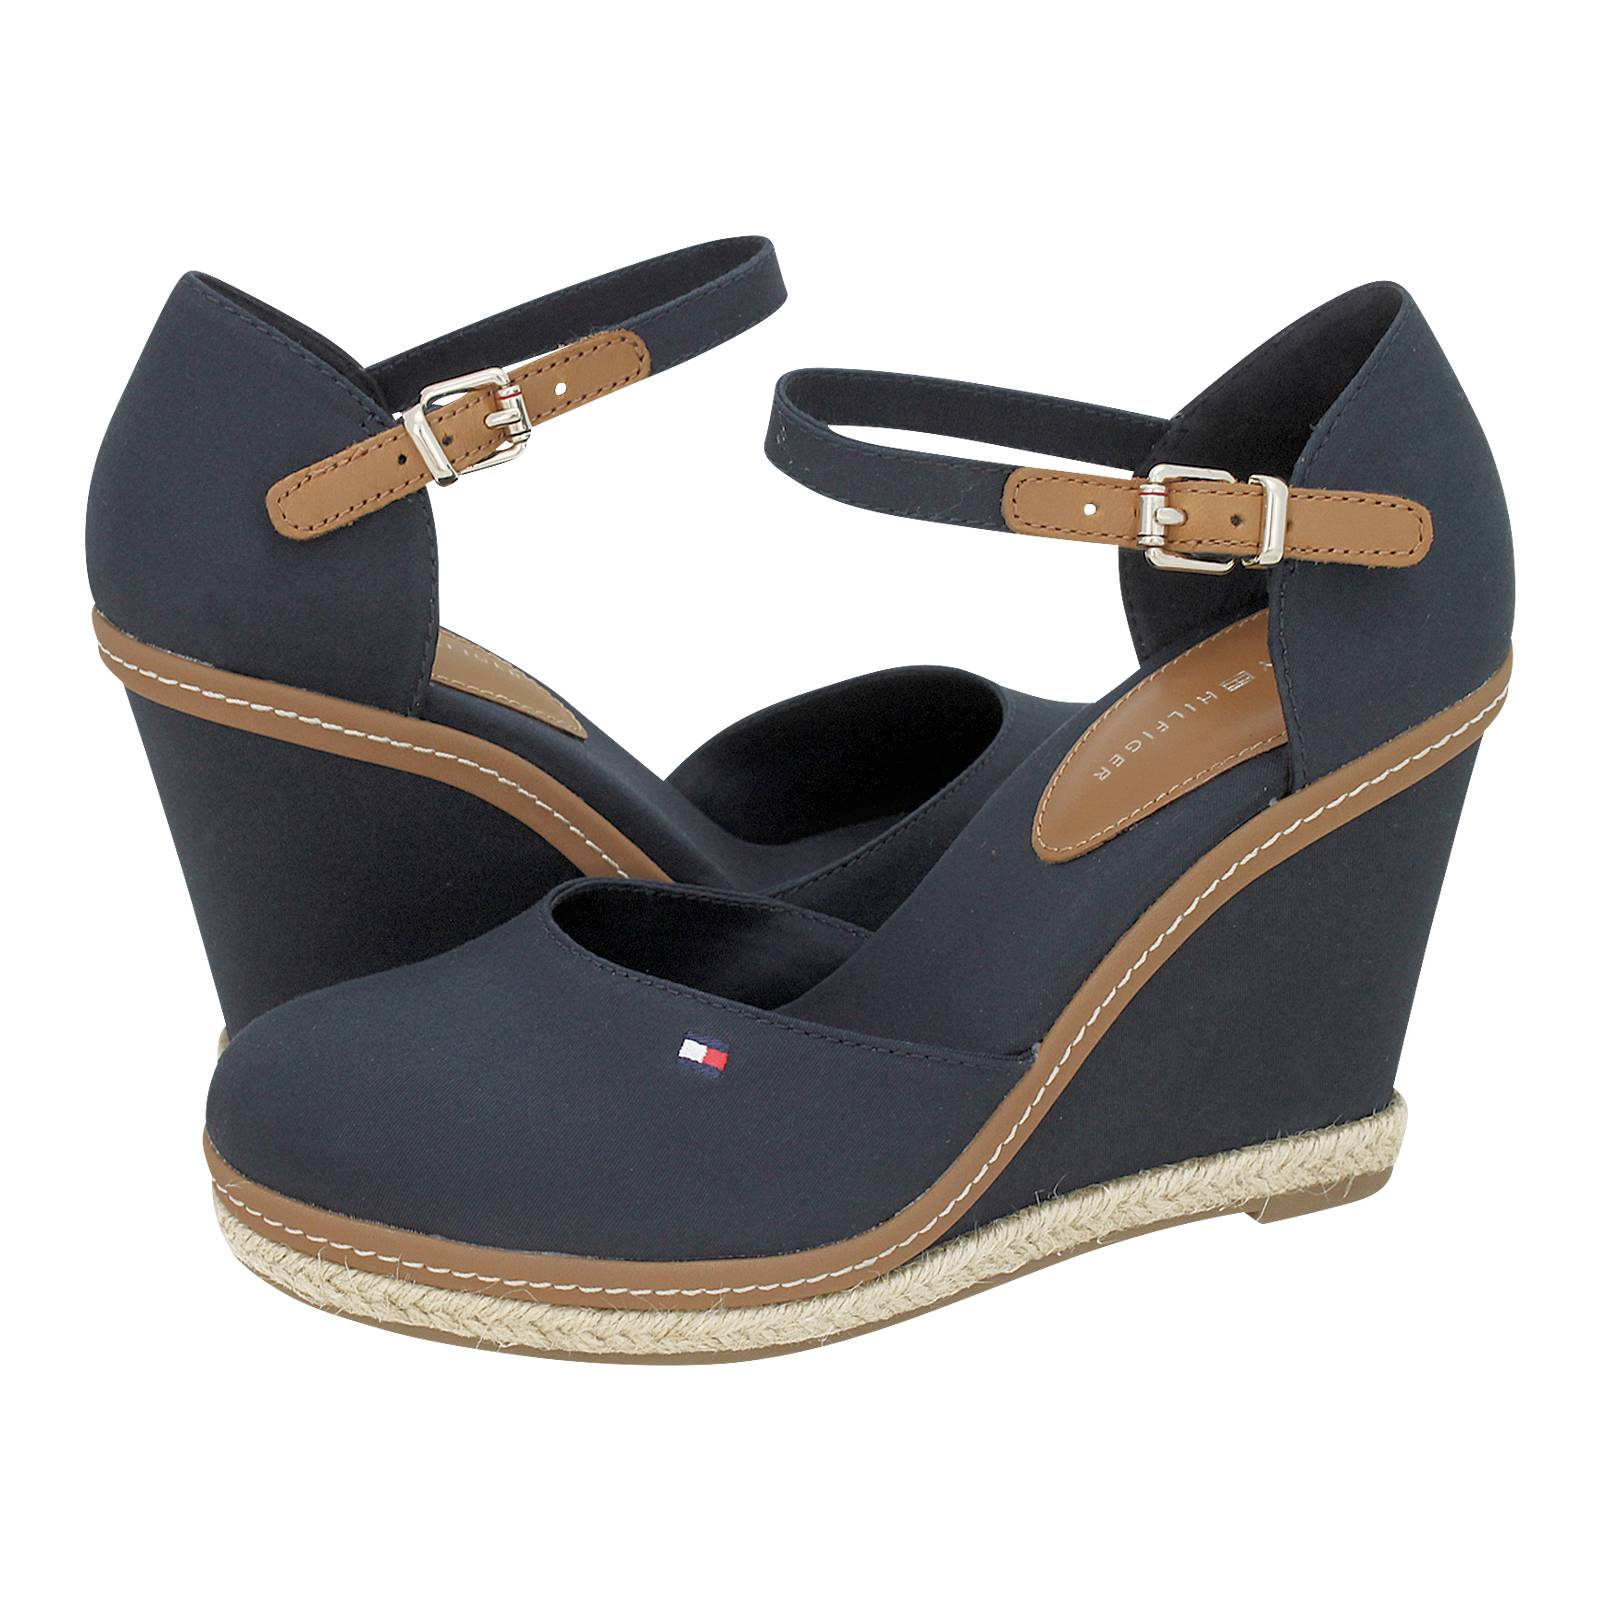 32d103339 Iconic Basic Closed Toe Wedge - Tommy Hilfiger Women s platforms ...